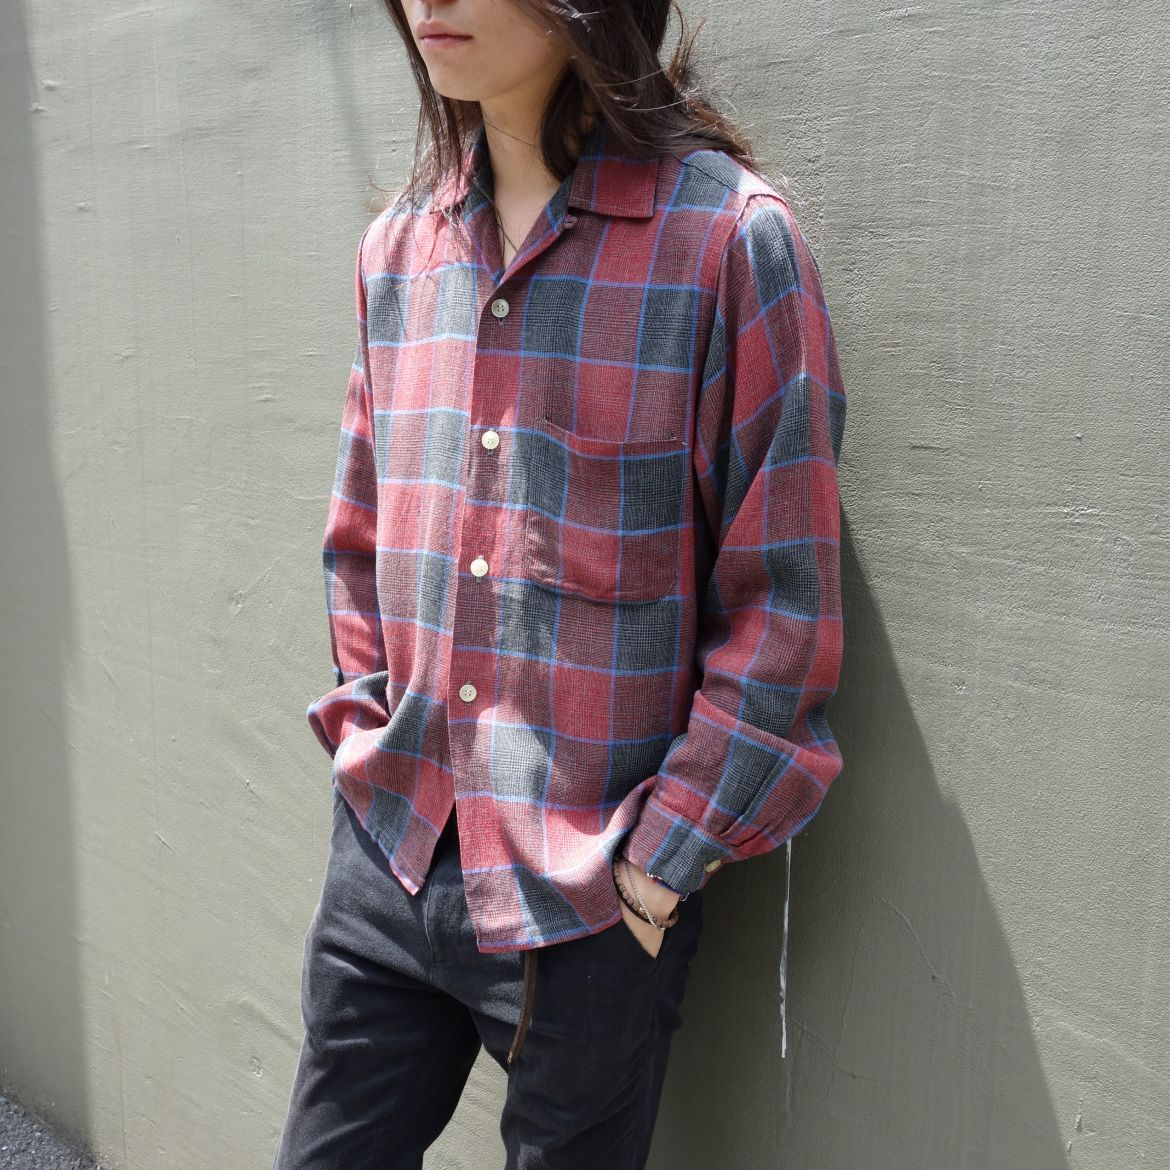 New Arrivals Vintage Rayon Shirts vintage styling blog